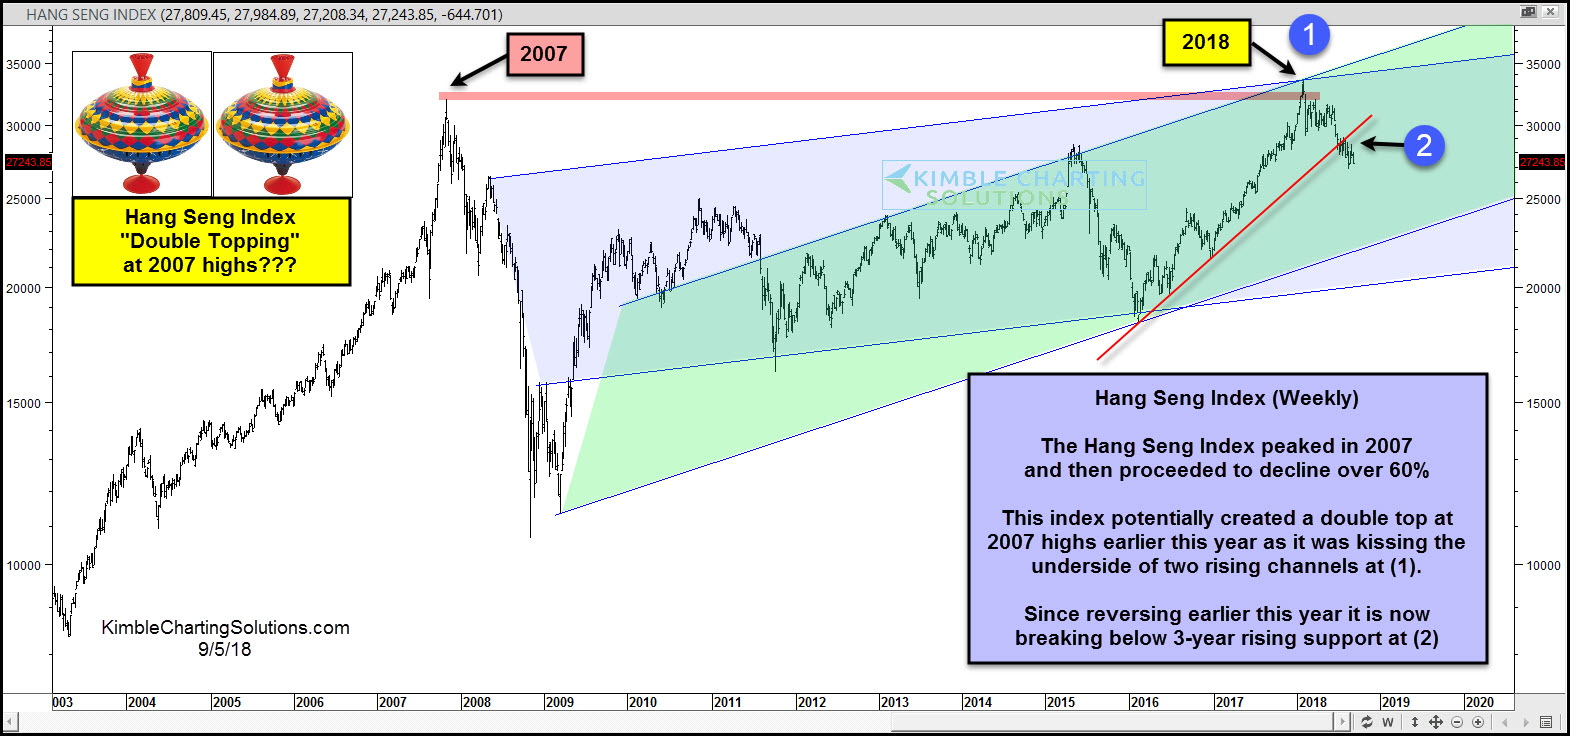 China's Hang Seng